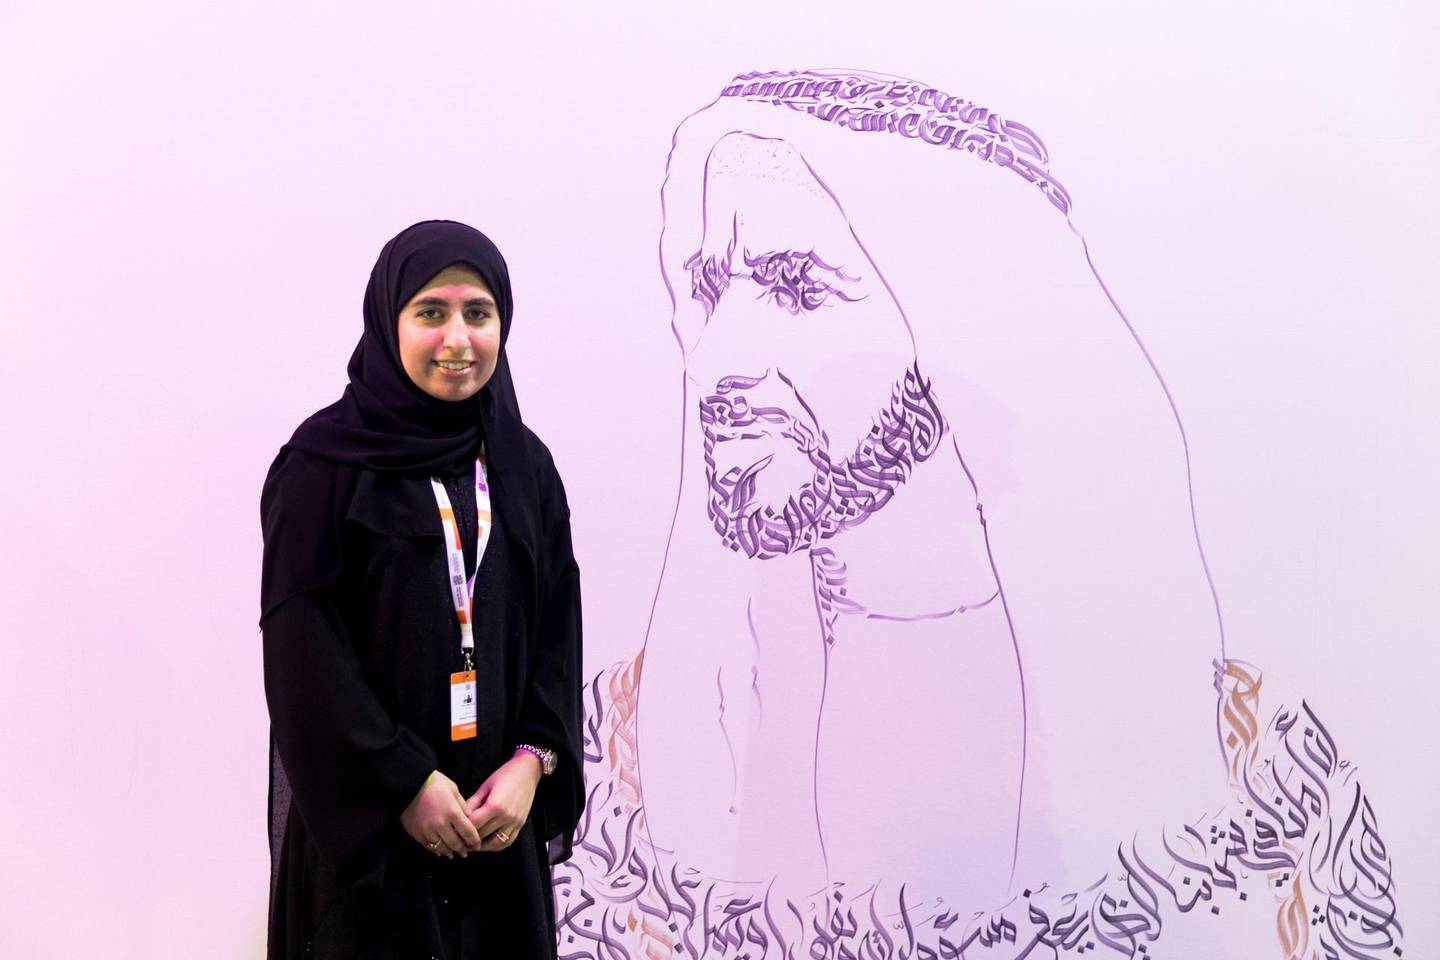 ABU DHABI, UNITED ARAB EMIRATES - OCTOBER 08, 2018. Khawla Al Zarooni, 20, at Mohammed Bin Zayed Council for Future Generations sessions, held at ADNEC.(Photo by Reem Mohammed/The National)Reporter: SHIREENA AL NUWAIS + ANAM RIZVISection:  NA